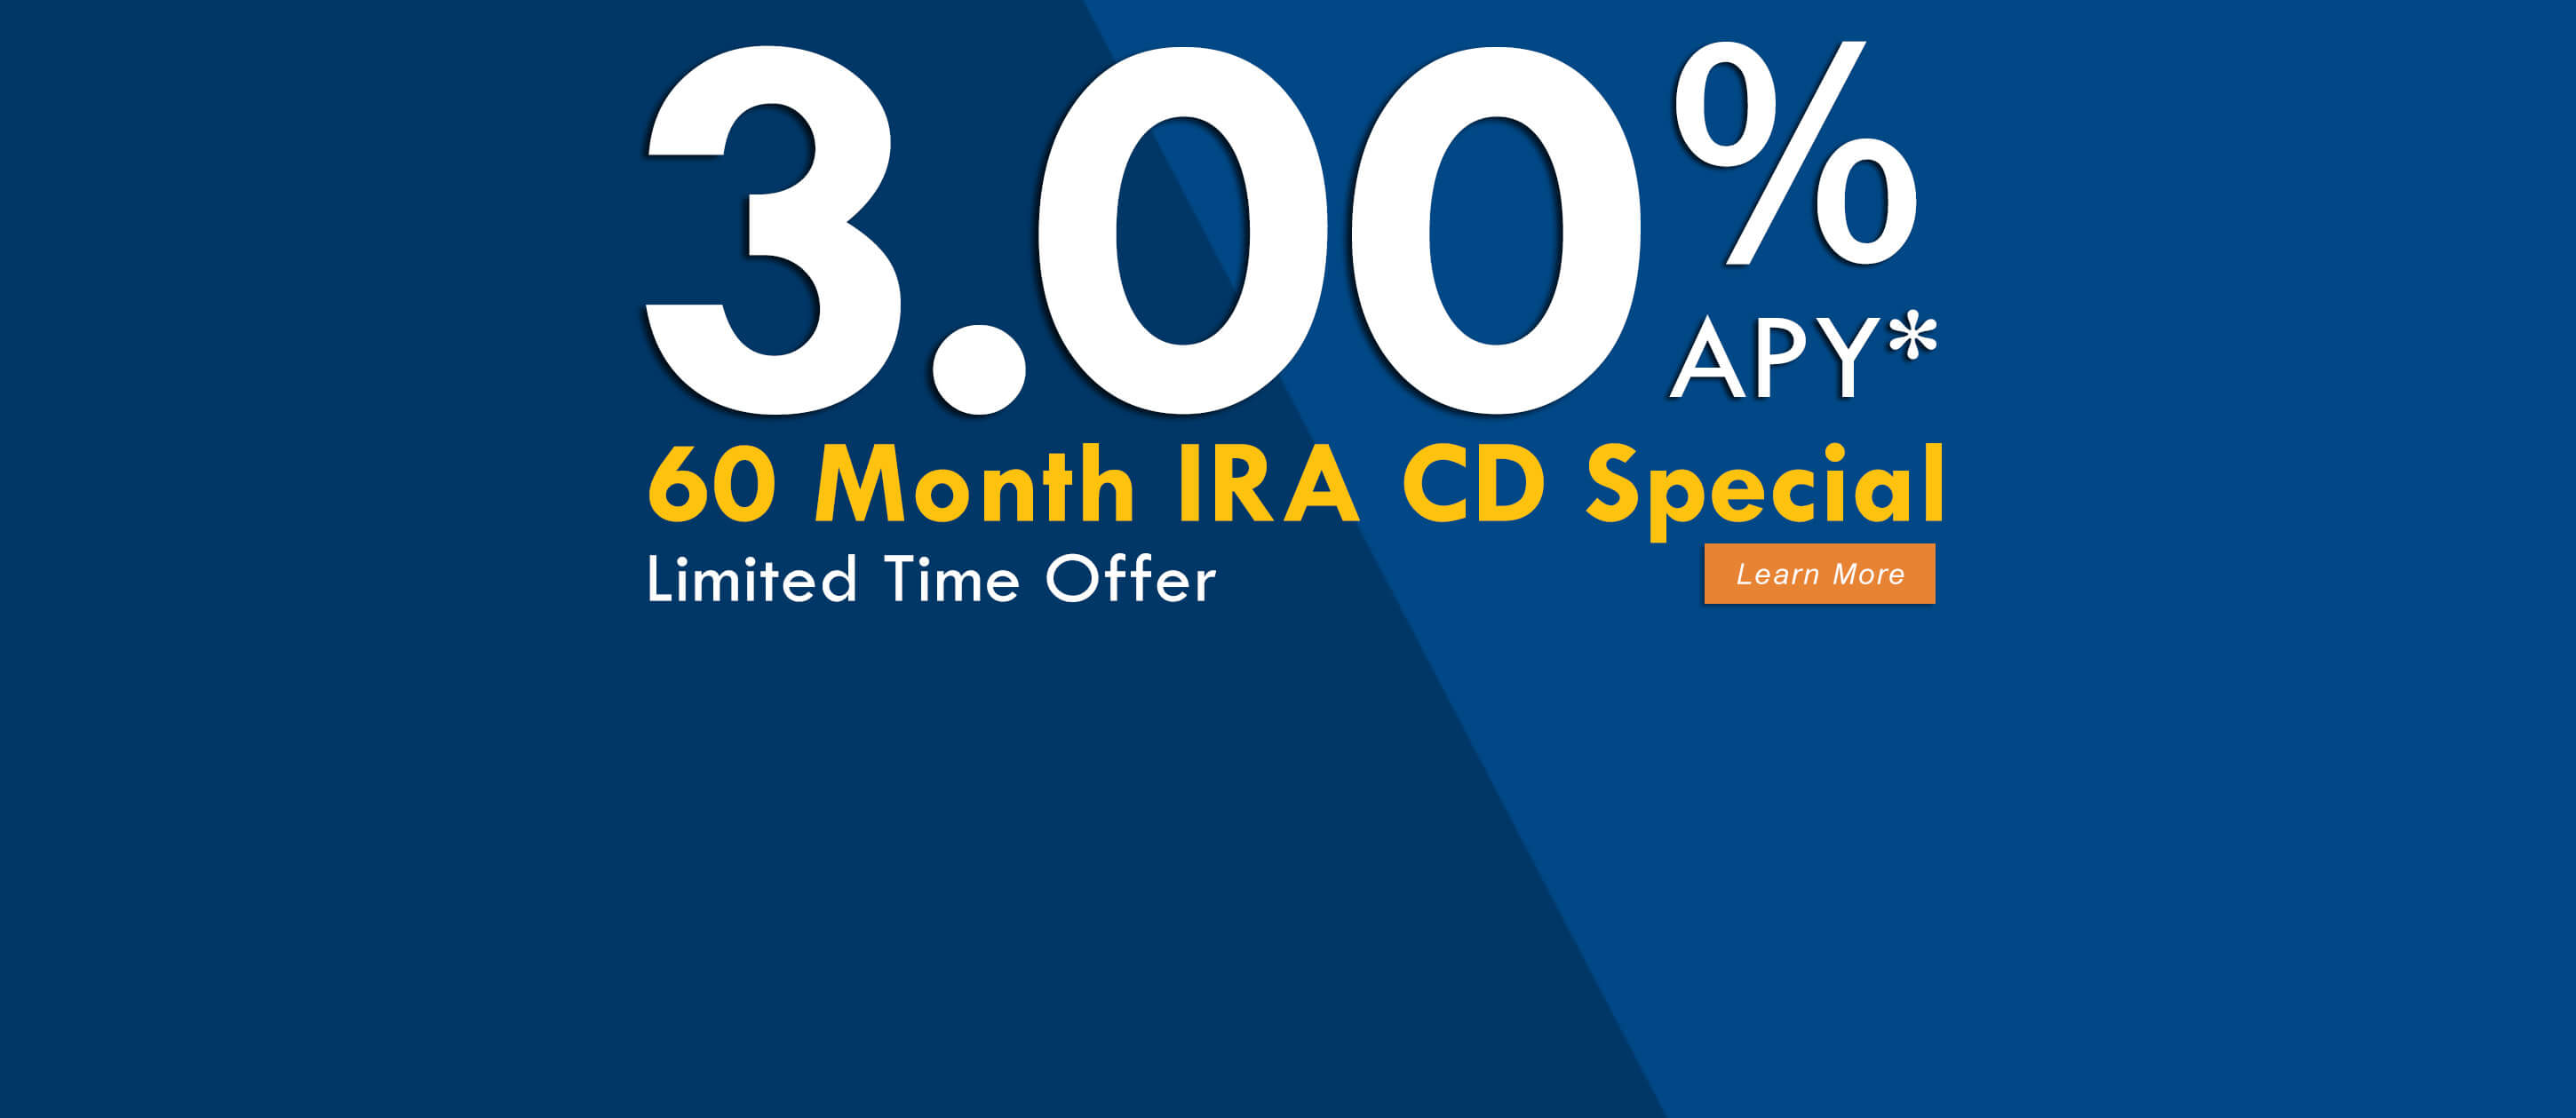 Earn 3.00% APY on 60 Month IRA CD Special